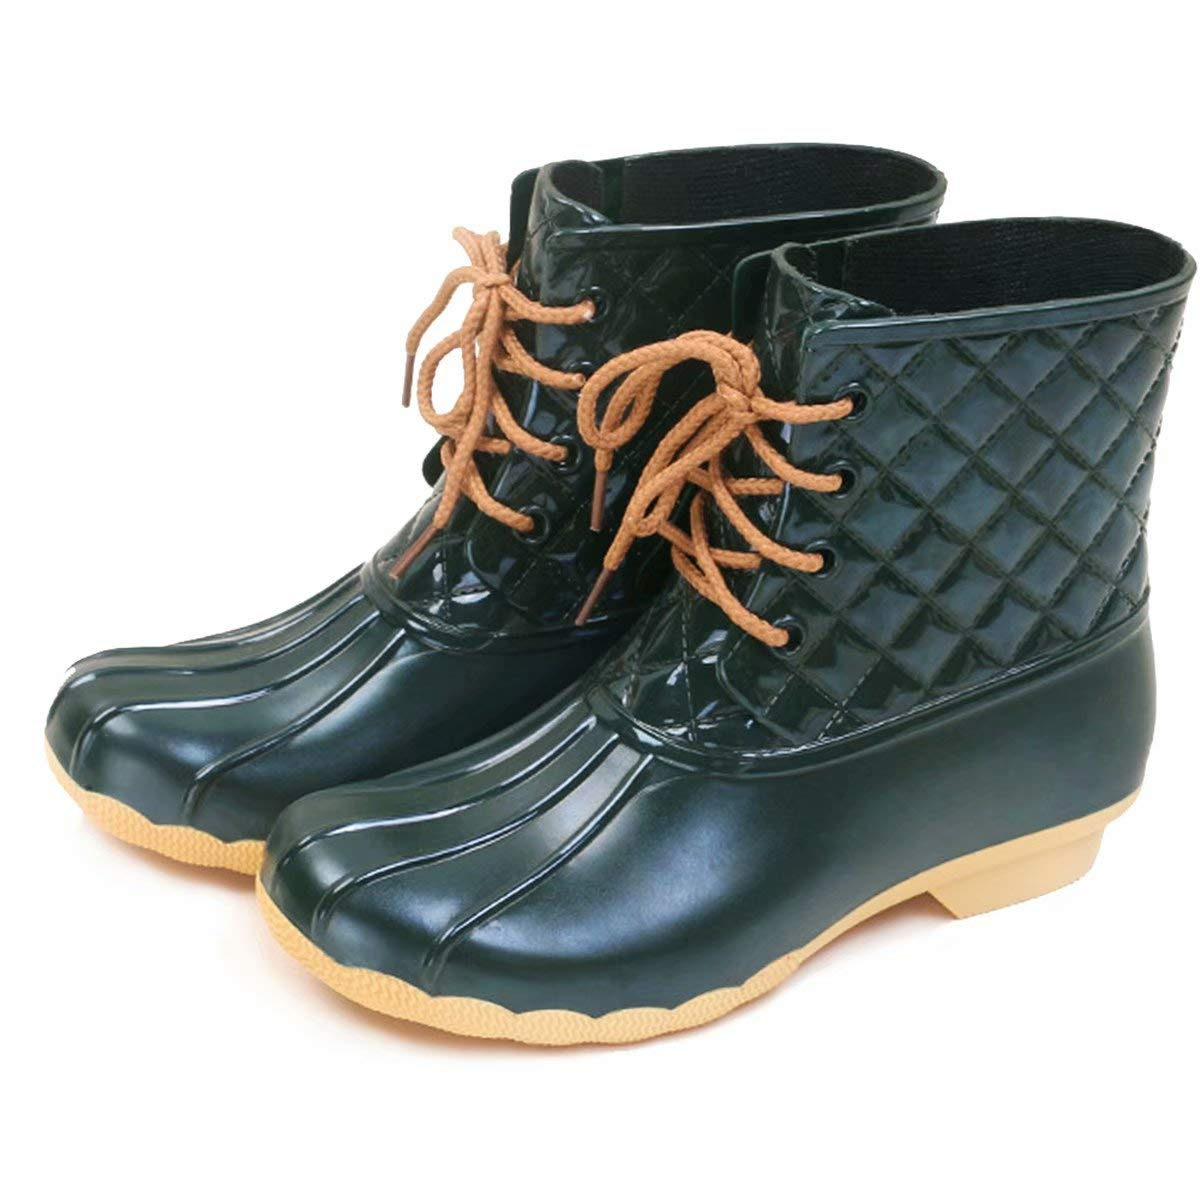 JOINFREE Mens Rain Shoes Mid High Calf Rubber Garden Shoes Outdoor Rain  Footwear Work Boots Shoes Boots